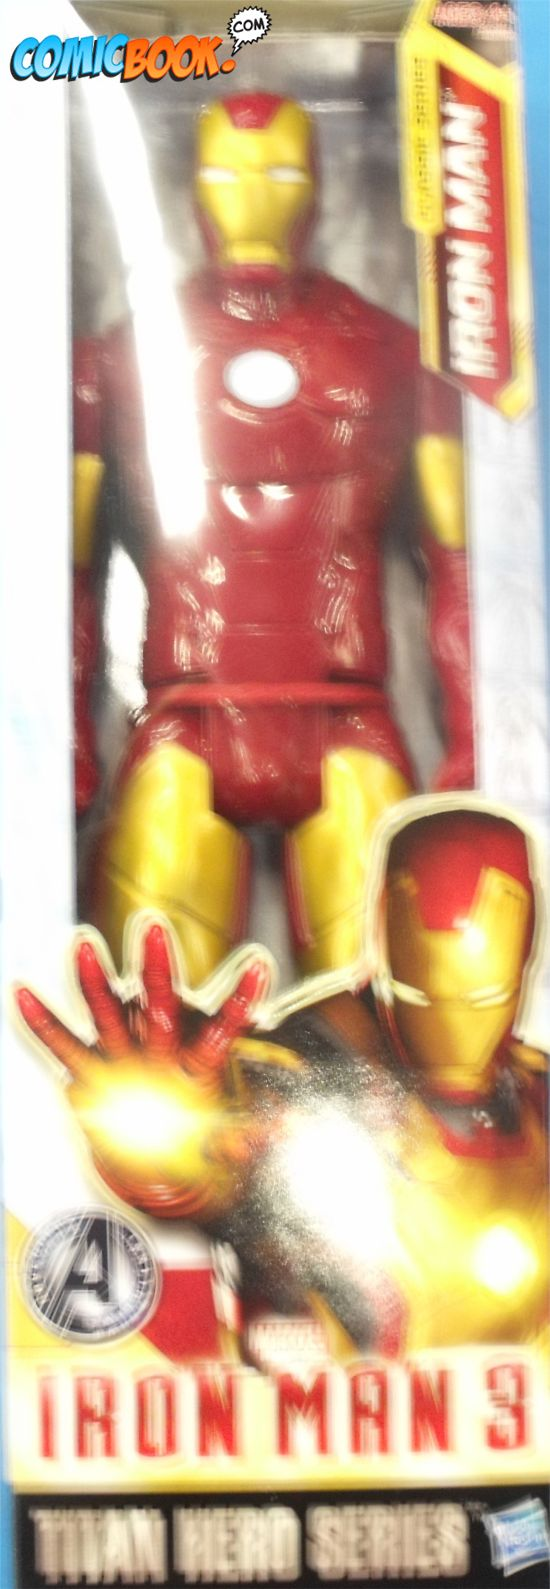 Iron Man 3 Action Figure